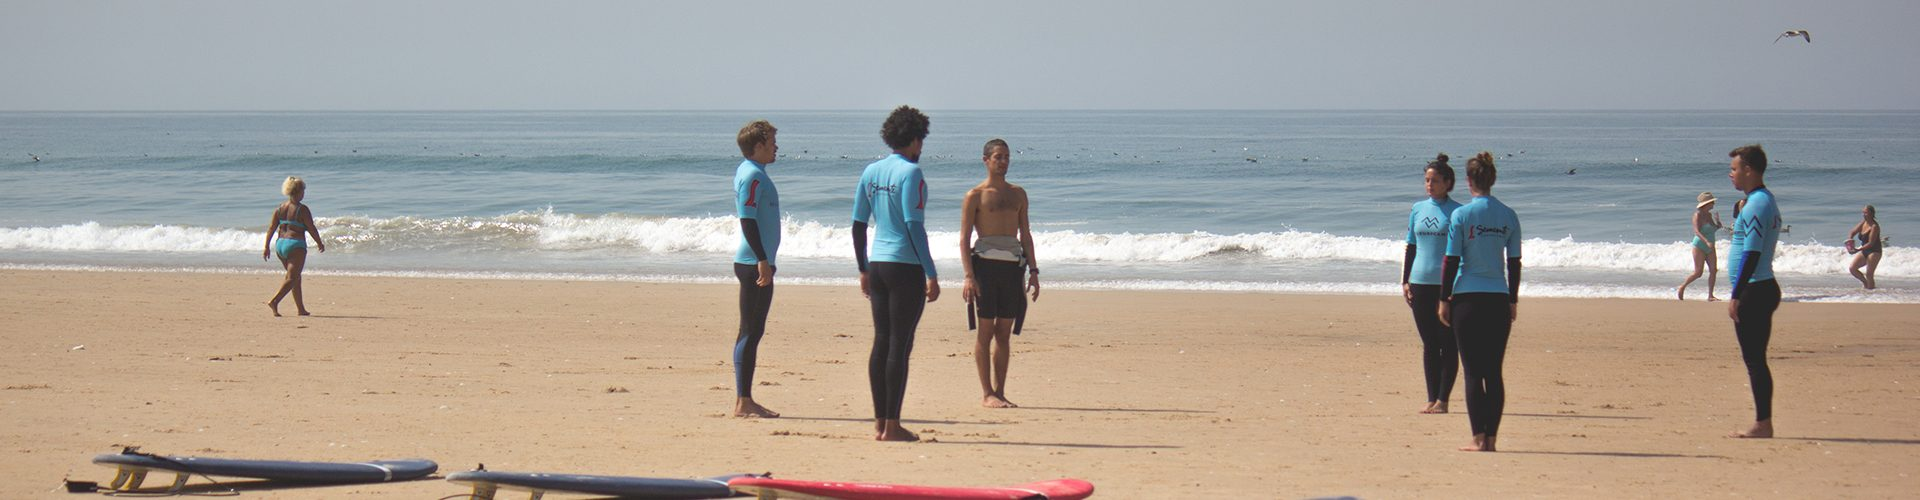 Surf Course in Portugal